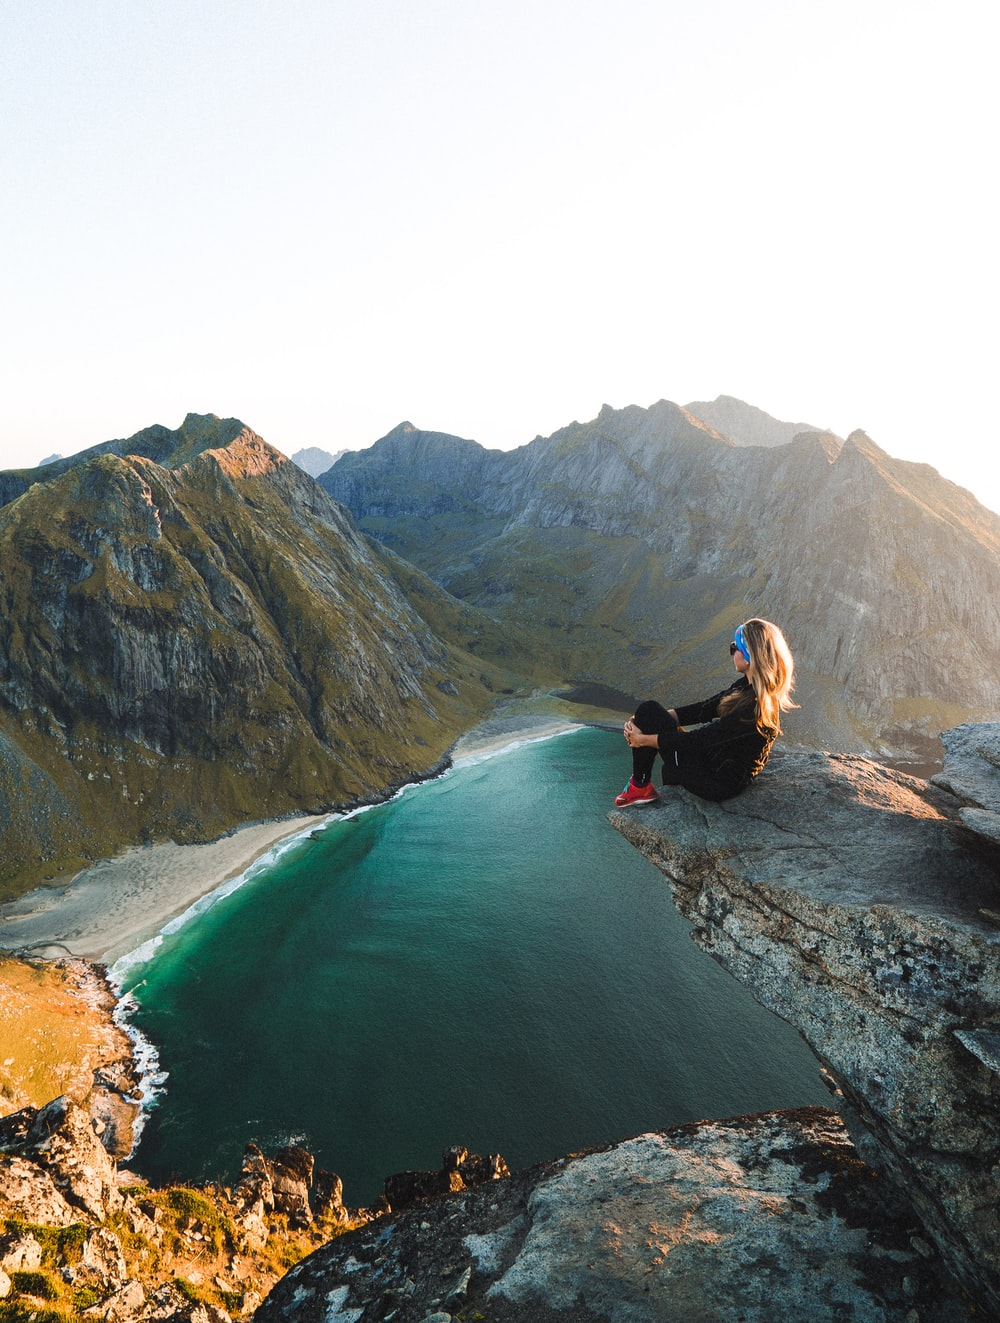 woman sitting on cliff overlooking body of water near mountains during daytime